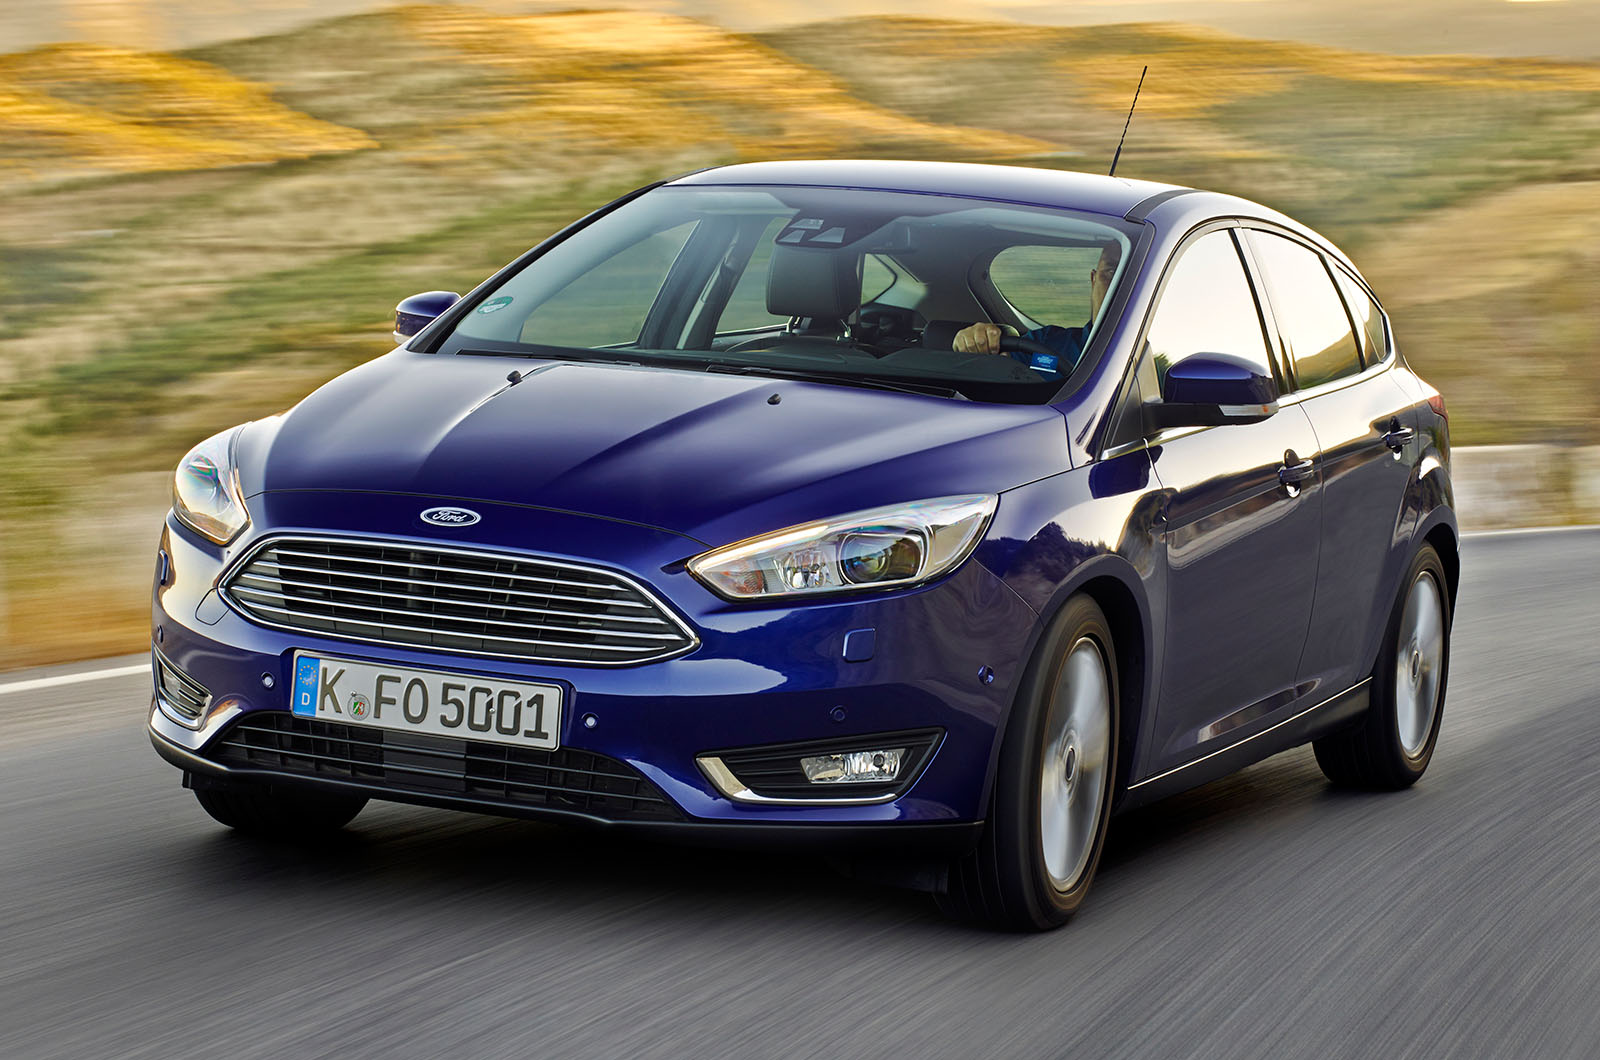 2014 ford focus first drive review autocar. Black Bedroom Furniture Sets. Home Design Ideas